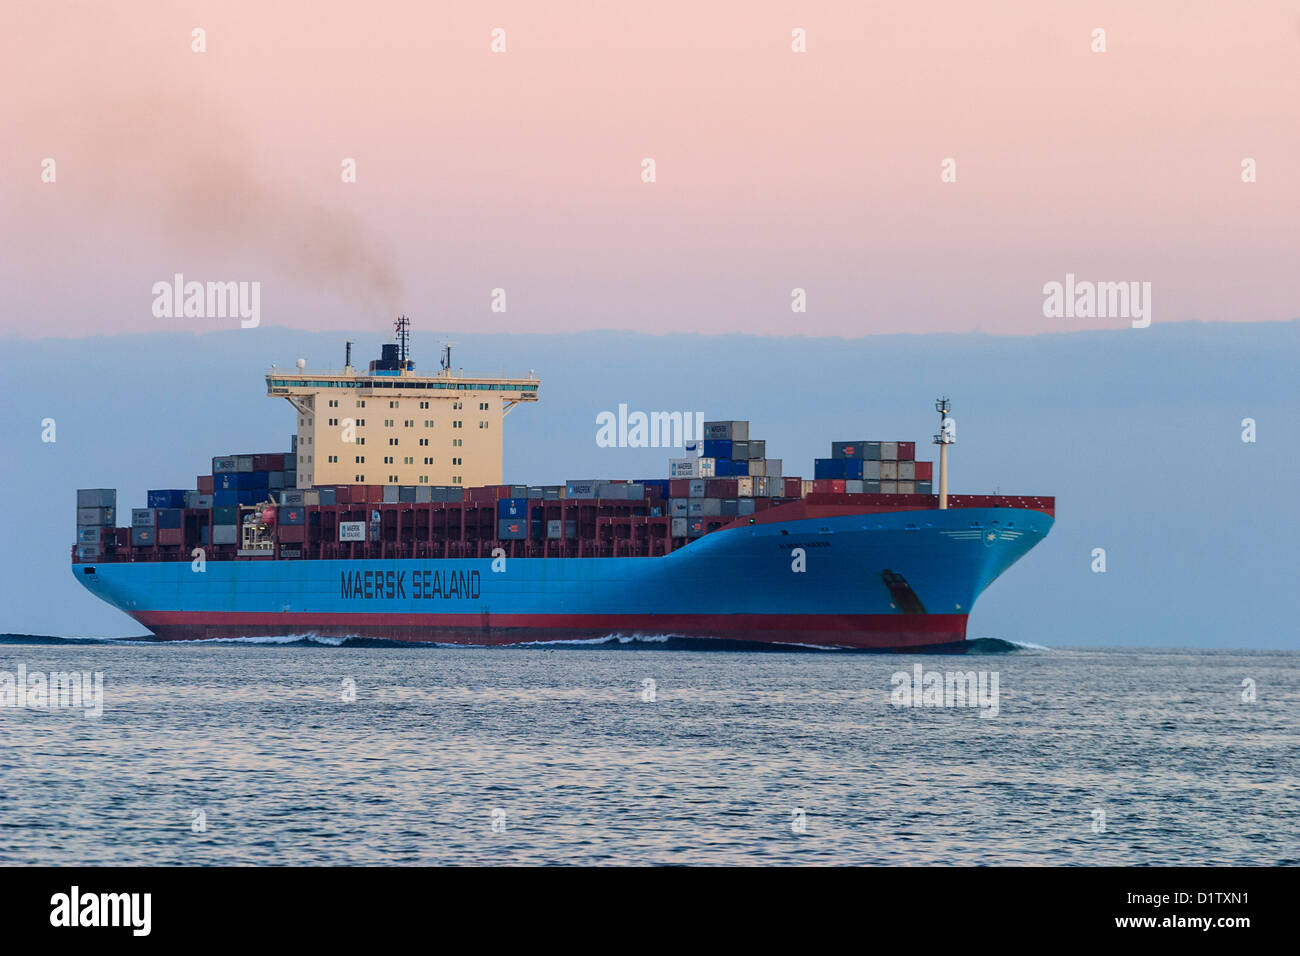 Maersk Sealand container ship at sea - Stock Image